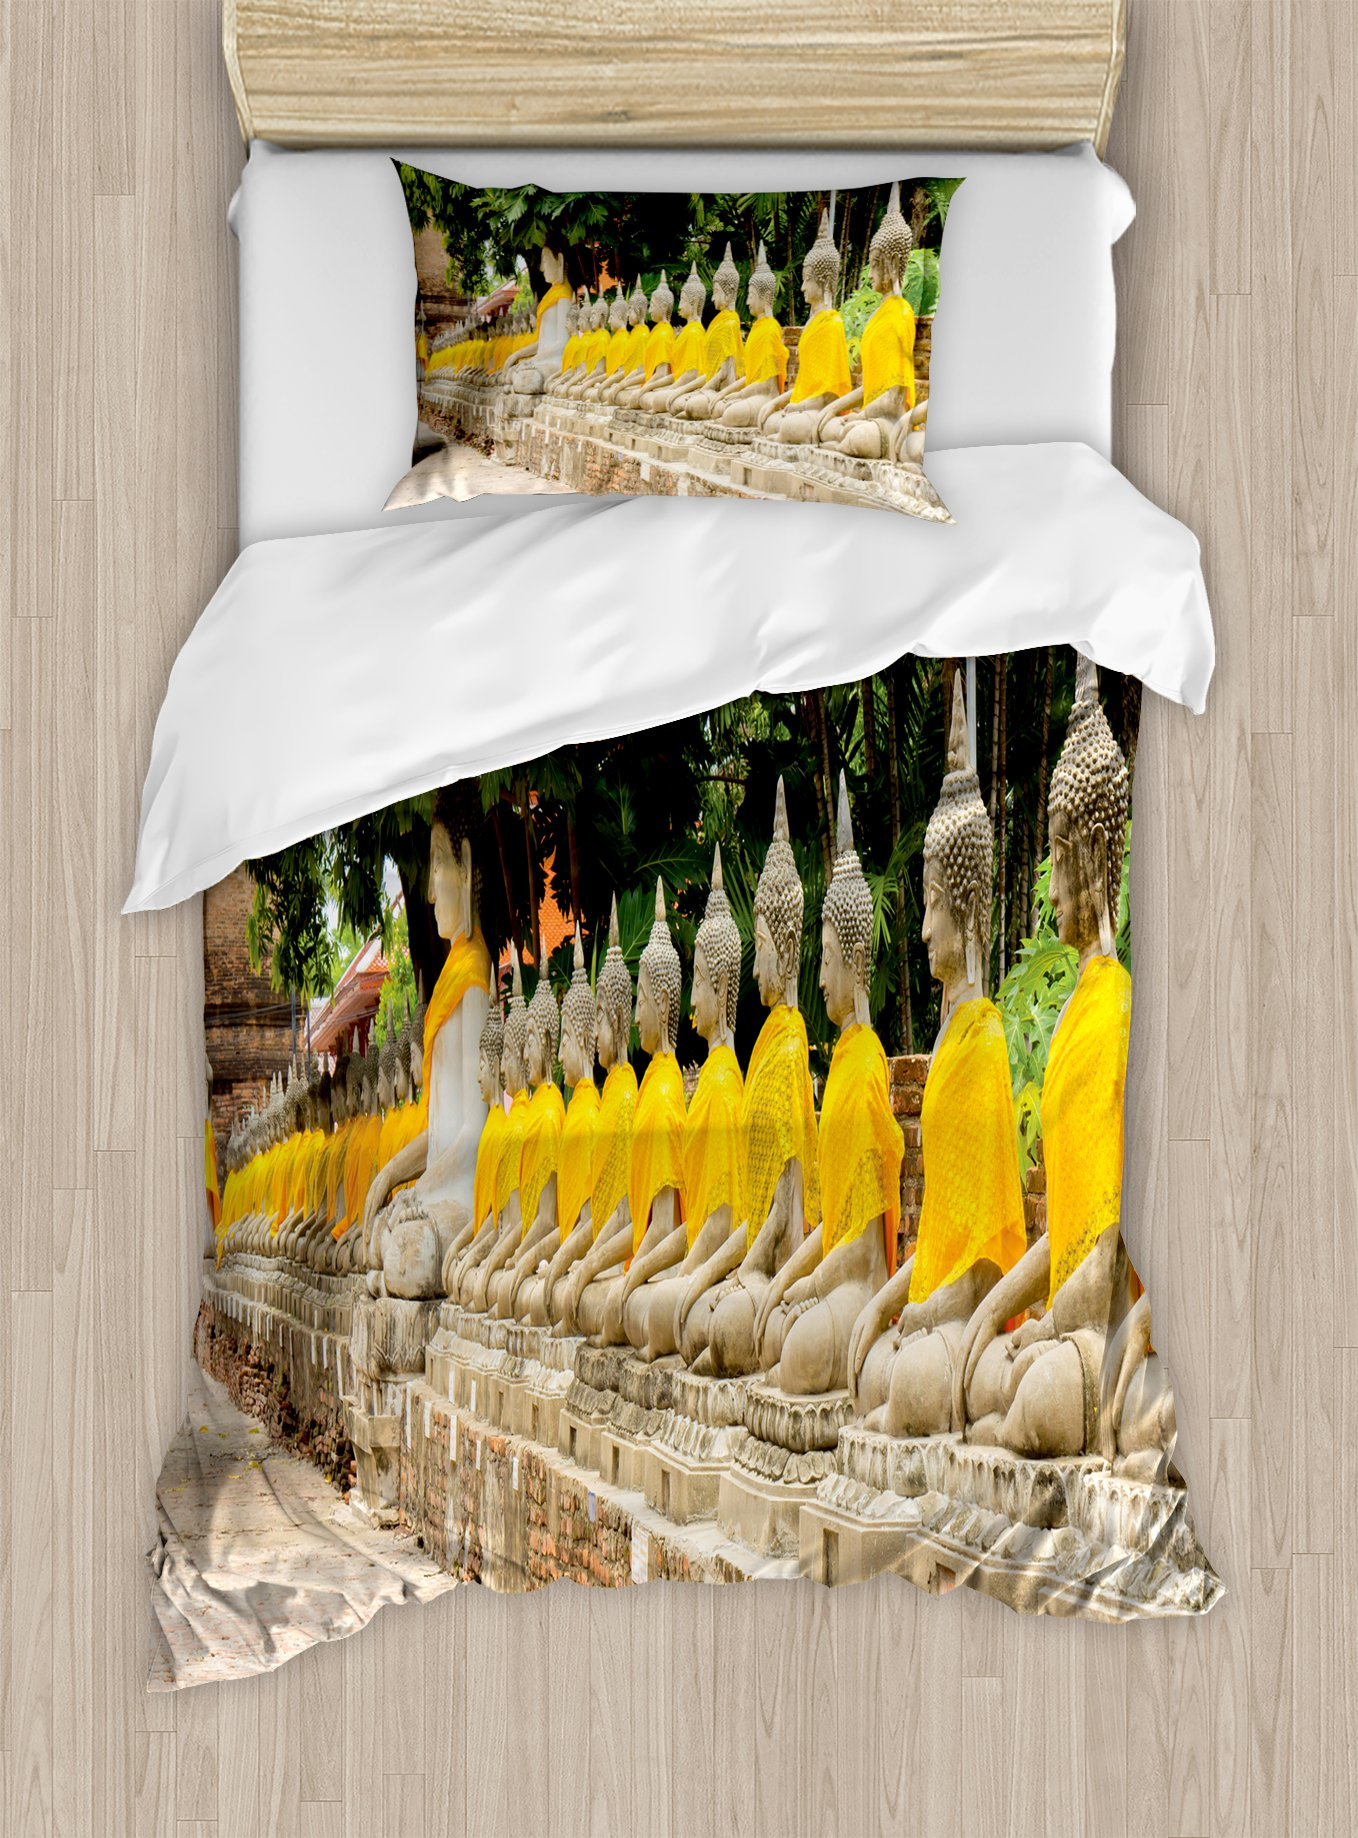 Ambesonne Asian Duvet Cover Set Twin Size, Picture of Aligned Religious Statues in Thailand Traditional Thai Design, Decorative 2 Piece Bedding Set with 1 Pillow Sham, Cream Yellow Green by Ambesonne